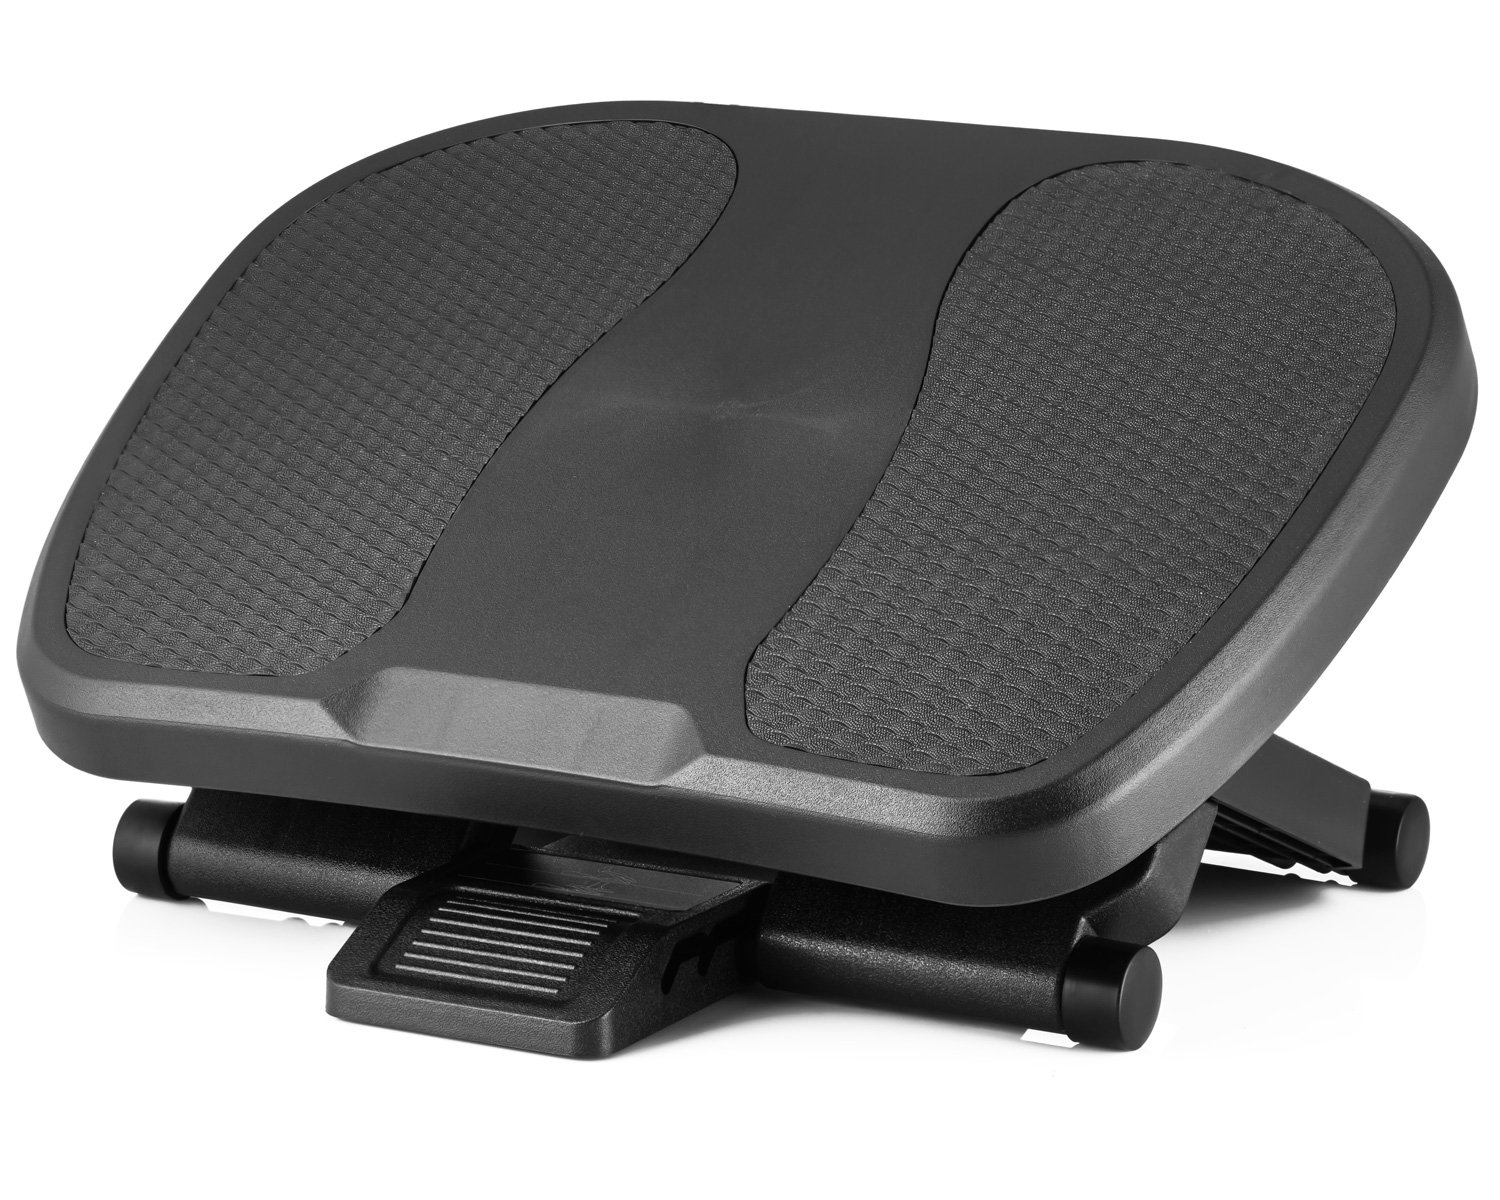 Halter F8012 Premium Ergonomic Foot Rest - 17.7'' X 13'' - Adjustable Angle & 3 Different Height Positions - Black